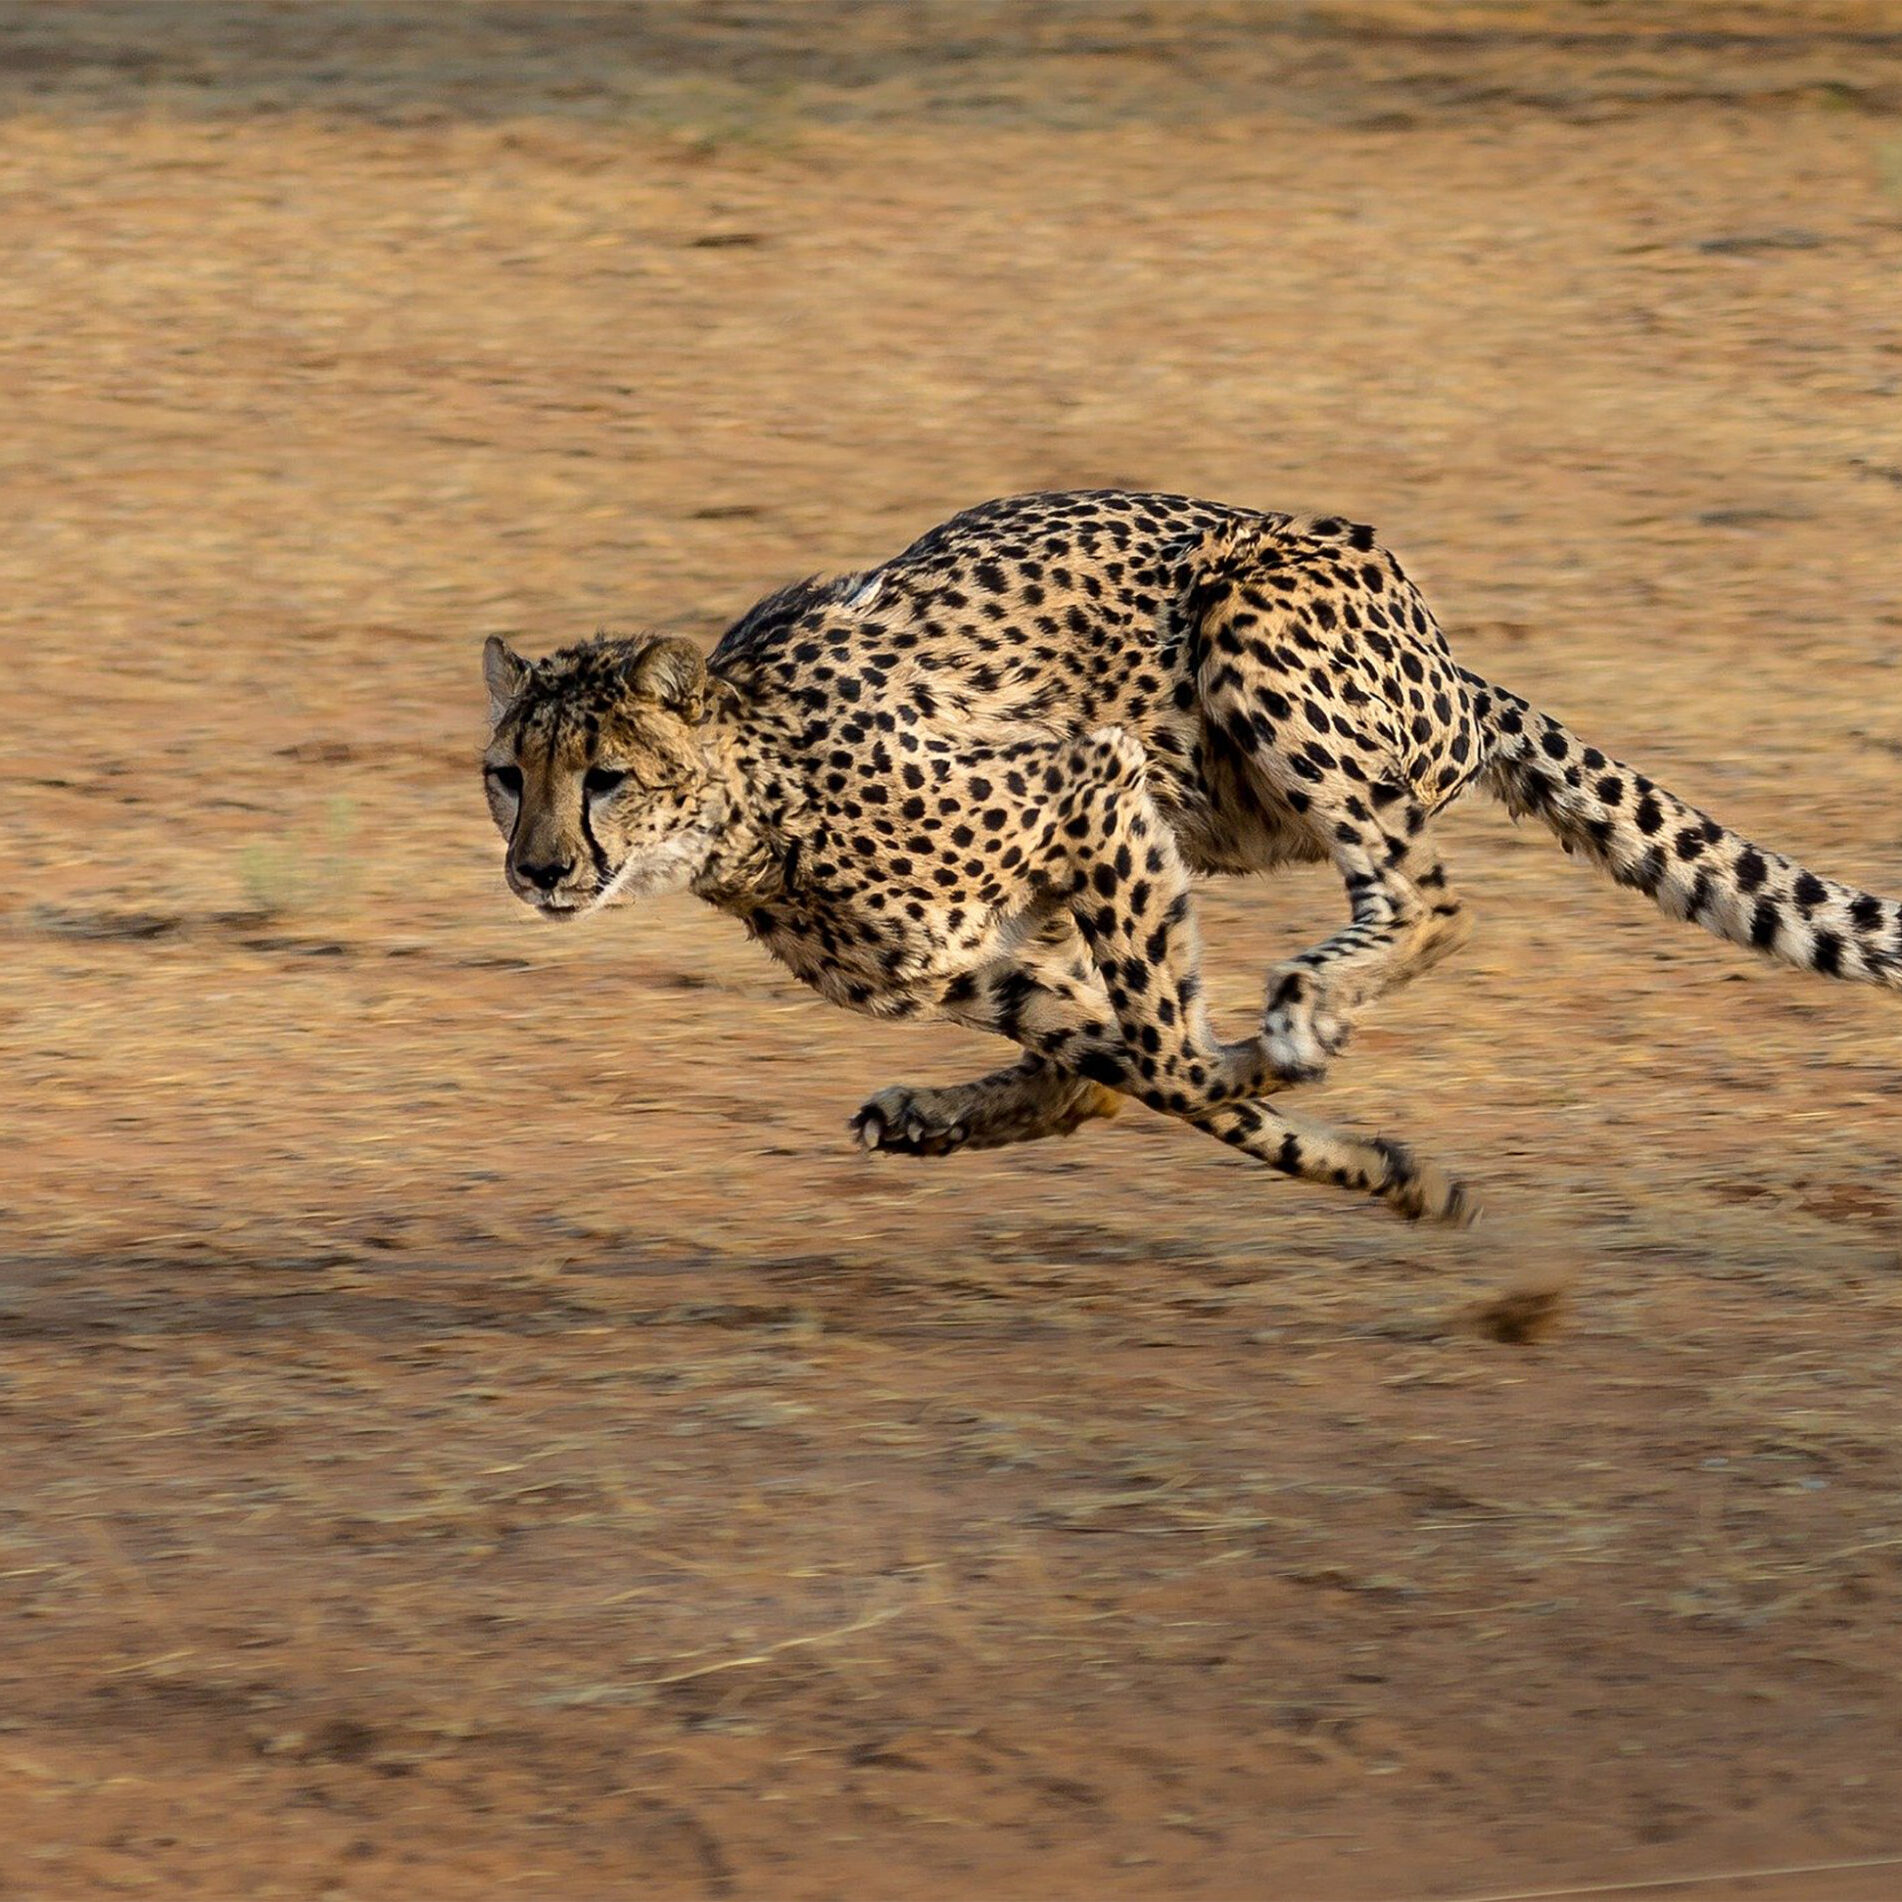 cheetah-2859581_1920_ext